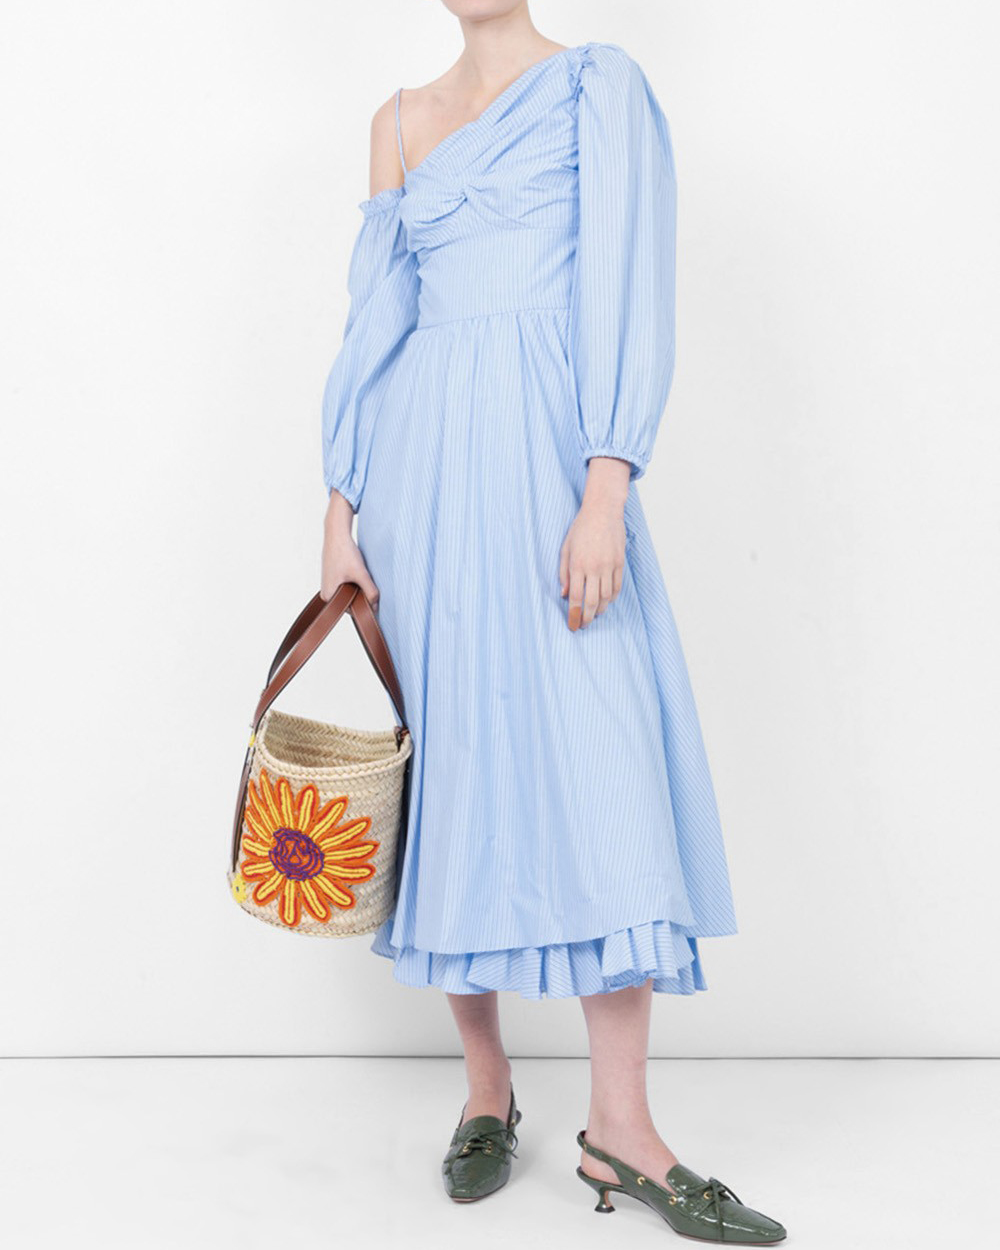 asymmetrical blue pinstripe alexa chung dress